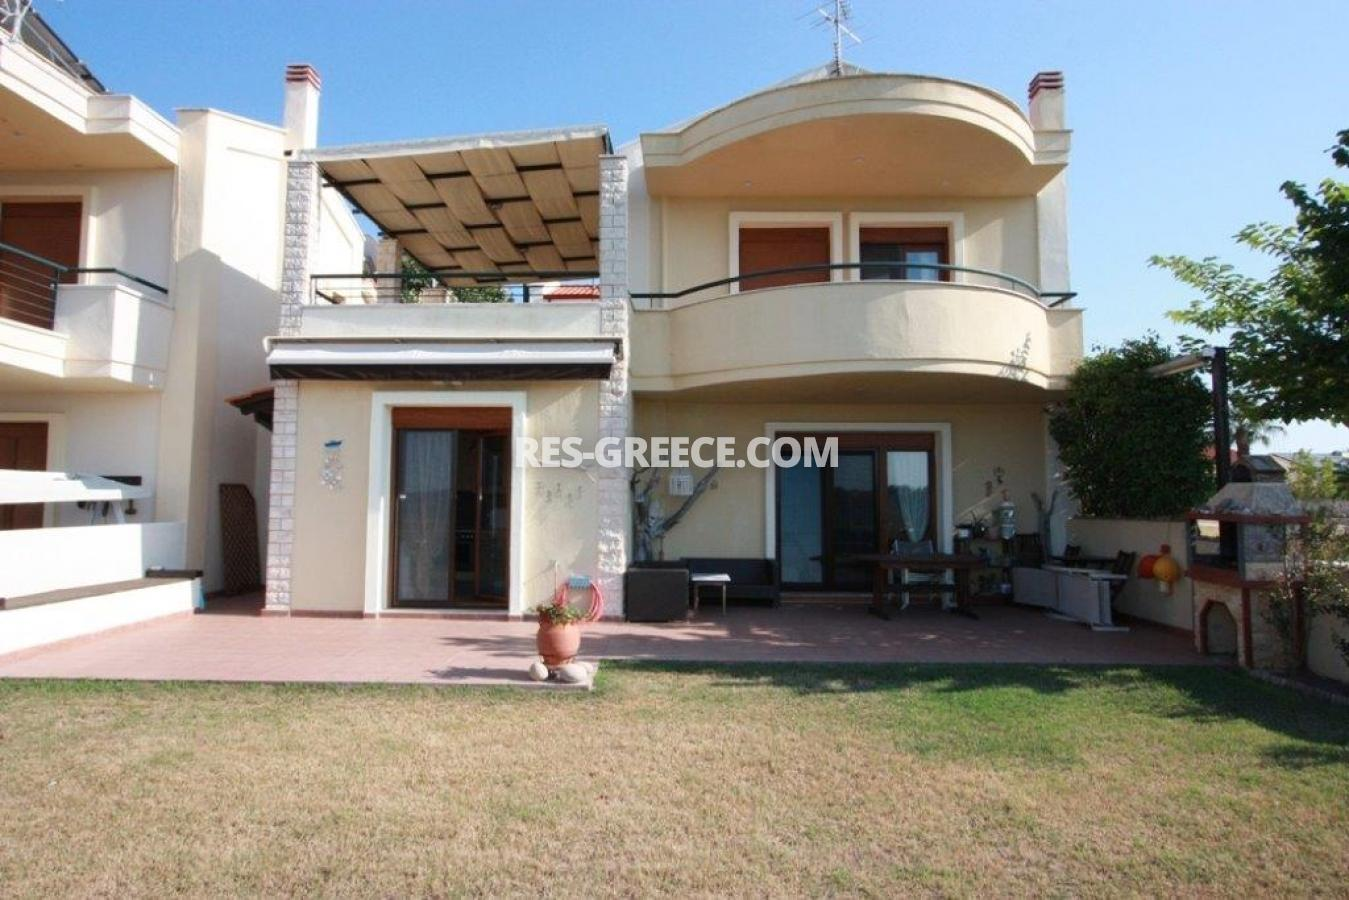 Dasotopi 1, Halkidiki-Kassandra, Greece - beachfront complex with common pool and elevator to the beach - Photo 24